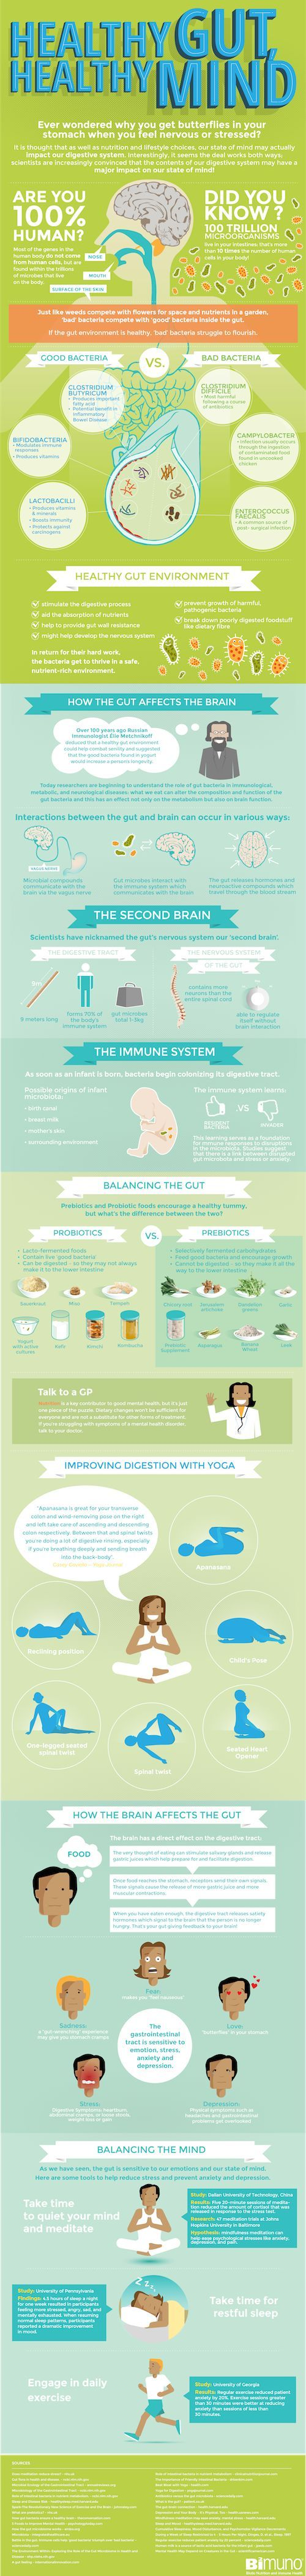 The Key to a Healthy Brain Is a Healthy Digestive System - scientists reveal strong link between gut & brain - infographic